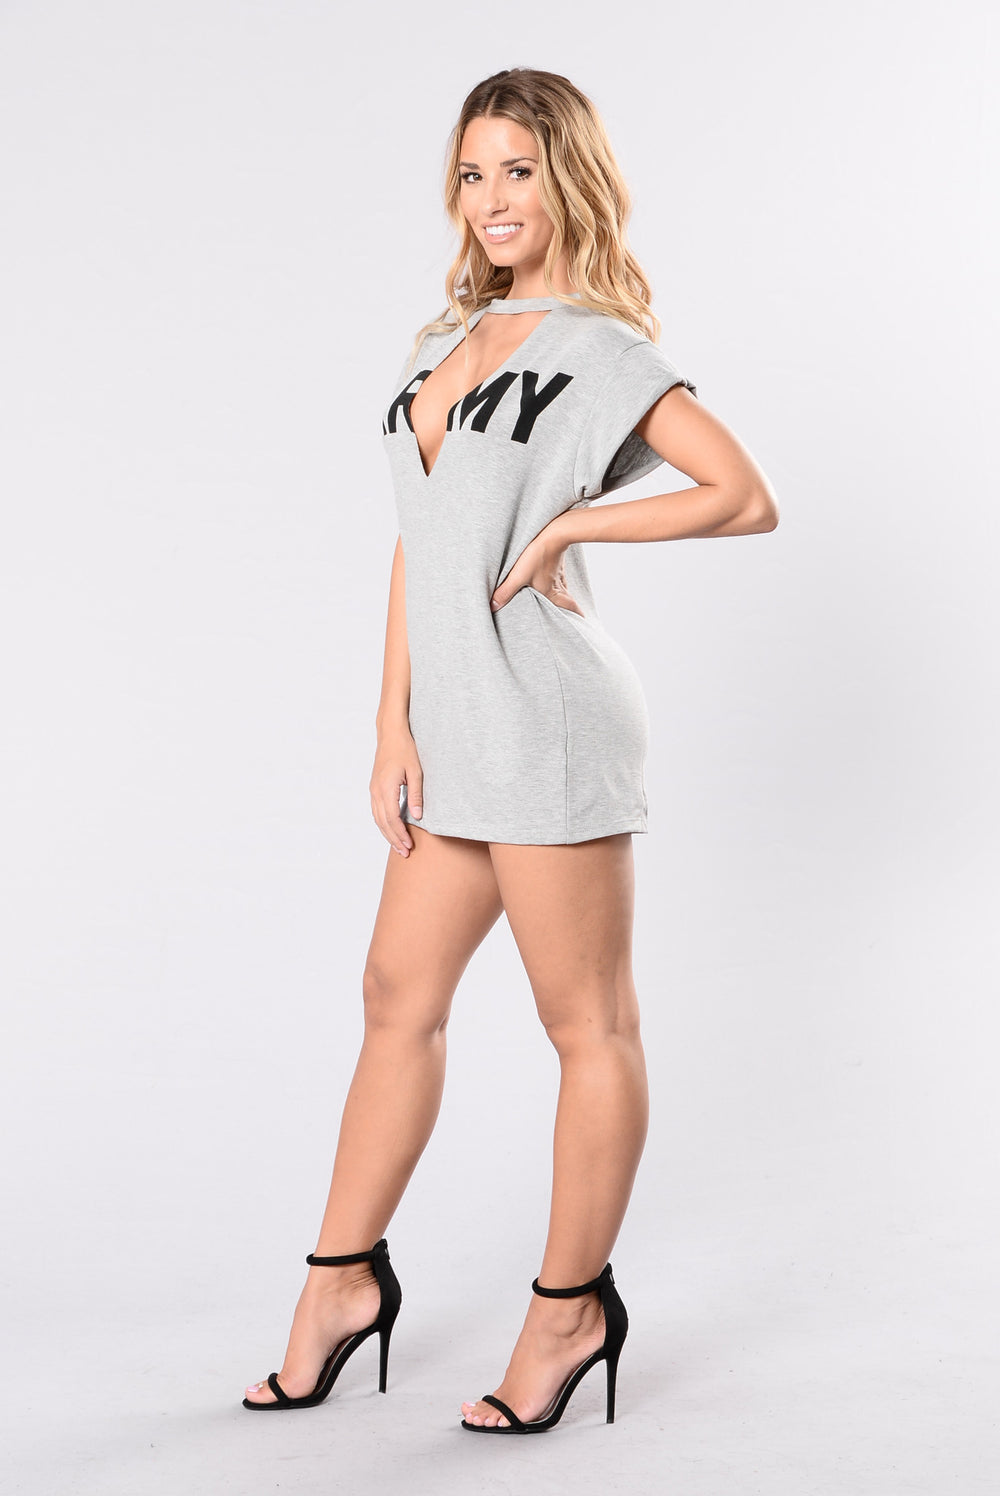 Army Strong Dress - Heather Grey/Black